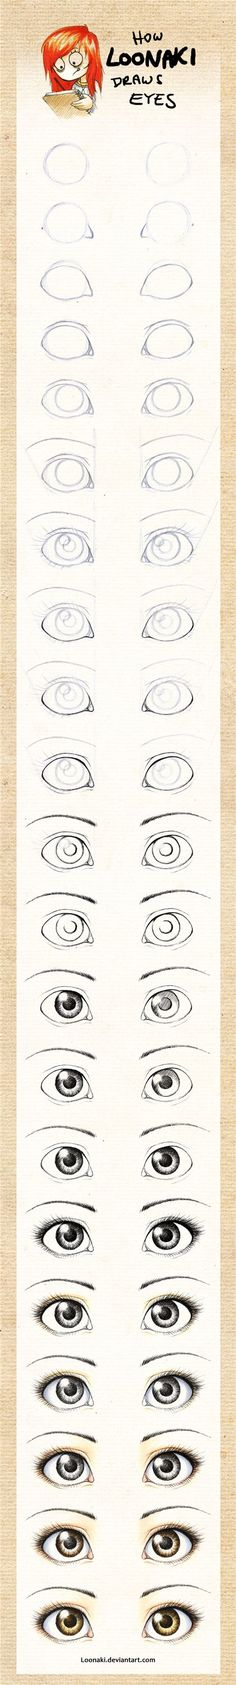 How to drawing eyes